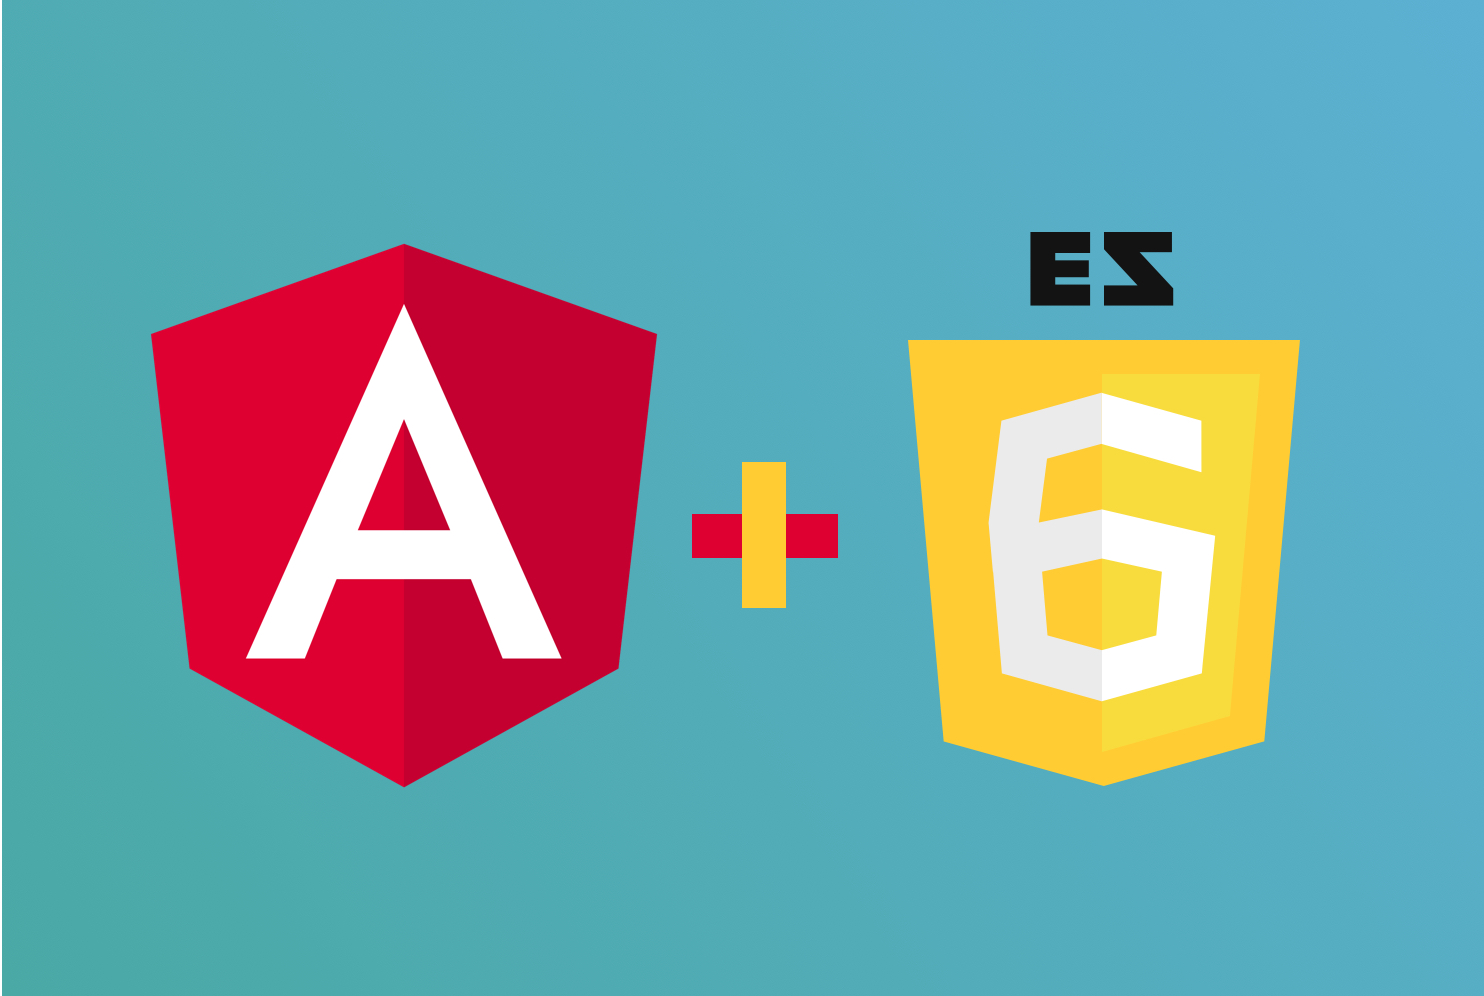 Angular Applications using ES6 Modules